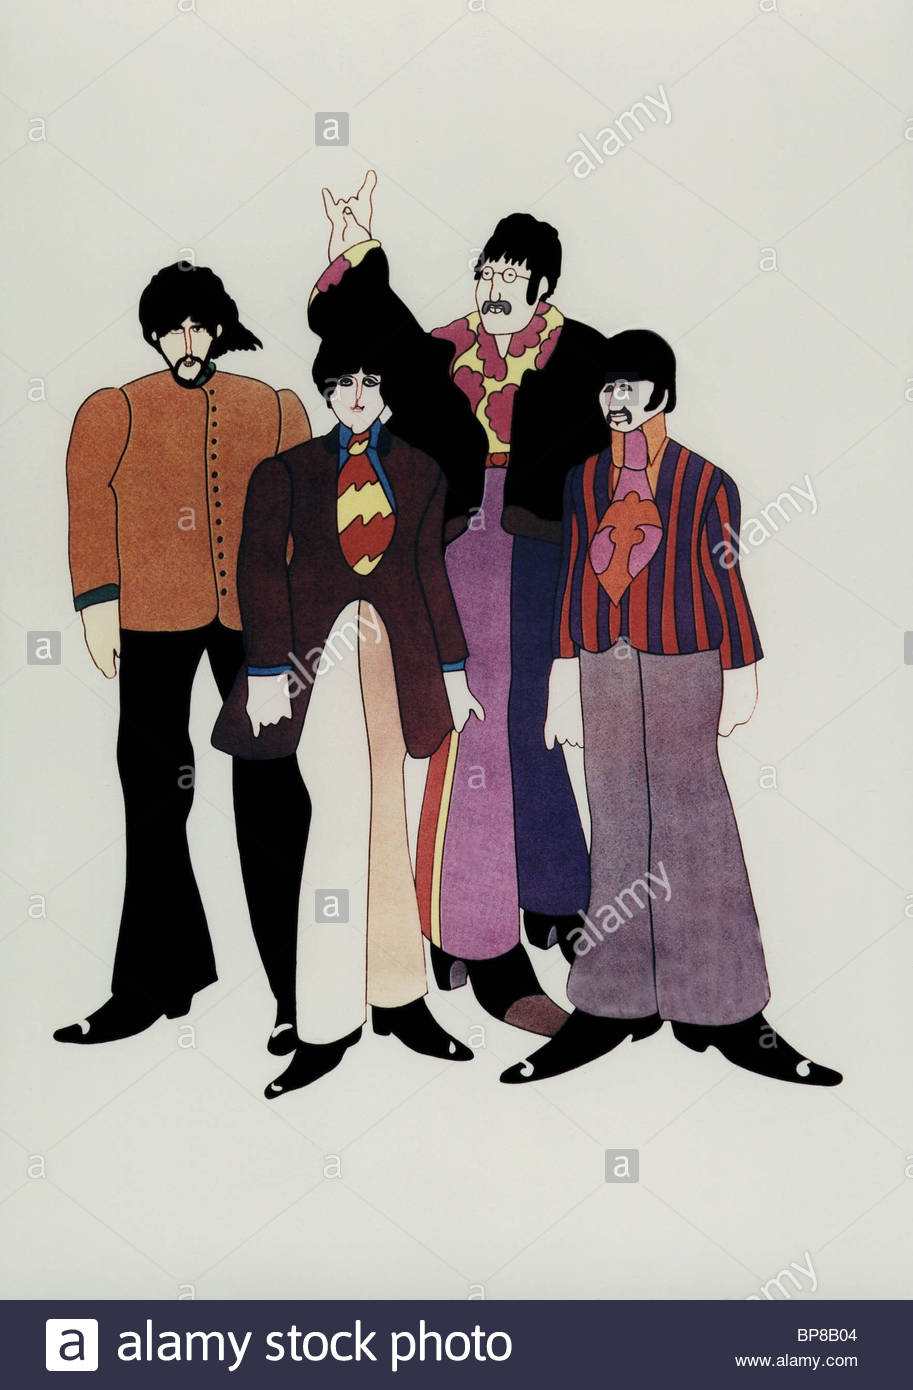 THE BEATLES CARTOONS YELLOW SUBMARINE THE BEATLES (1968) - Stock Image